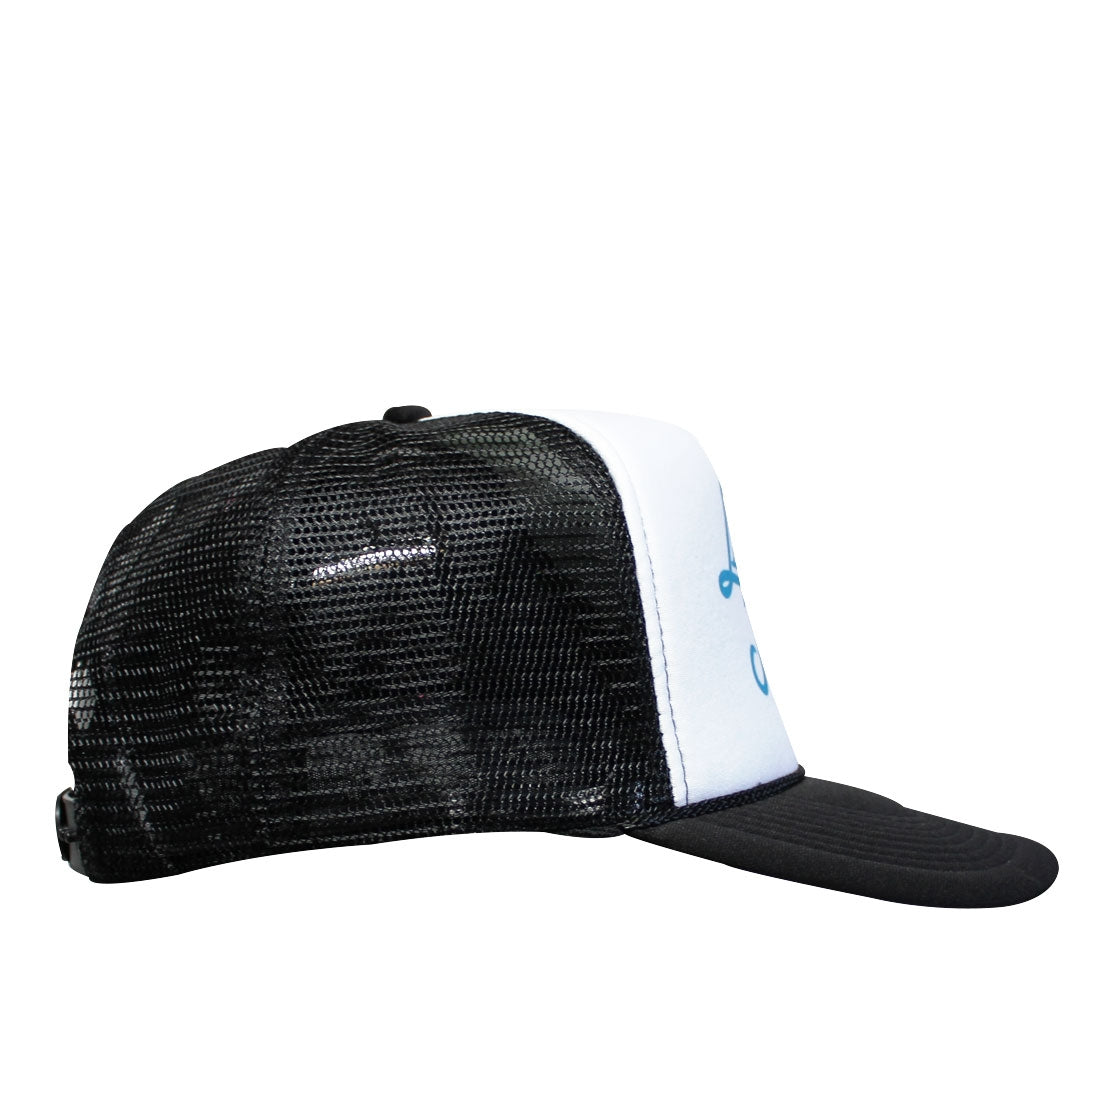 Fluid Curved Bill Trucker Hat in Black White Black - Side View